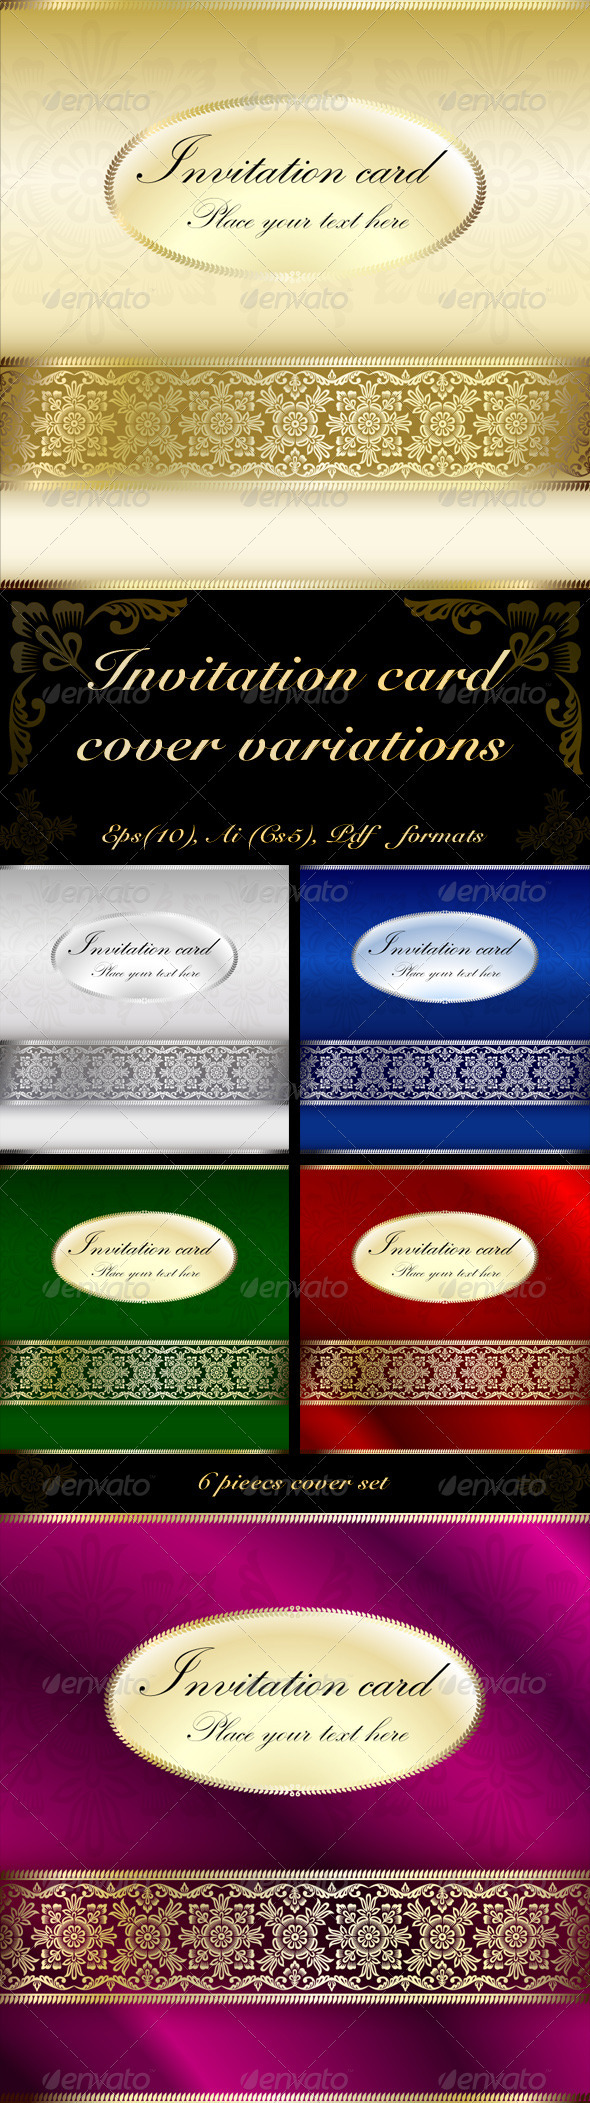 Invitation Card Cover Variations - Seasons/Holidays Conceptual